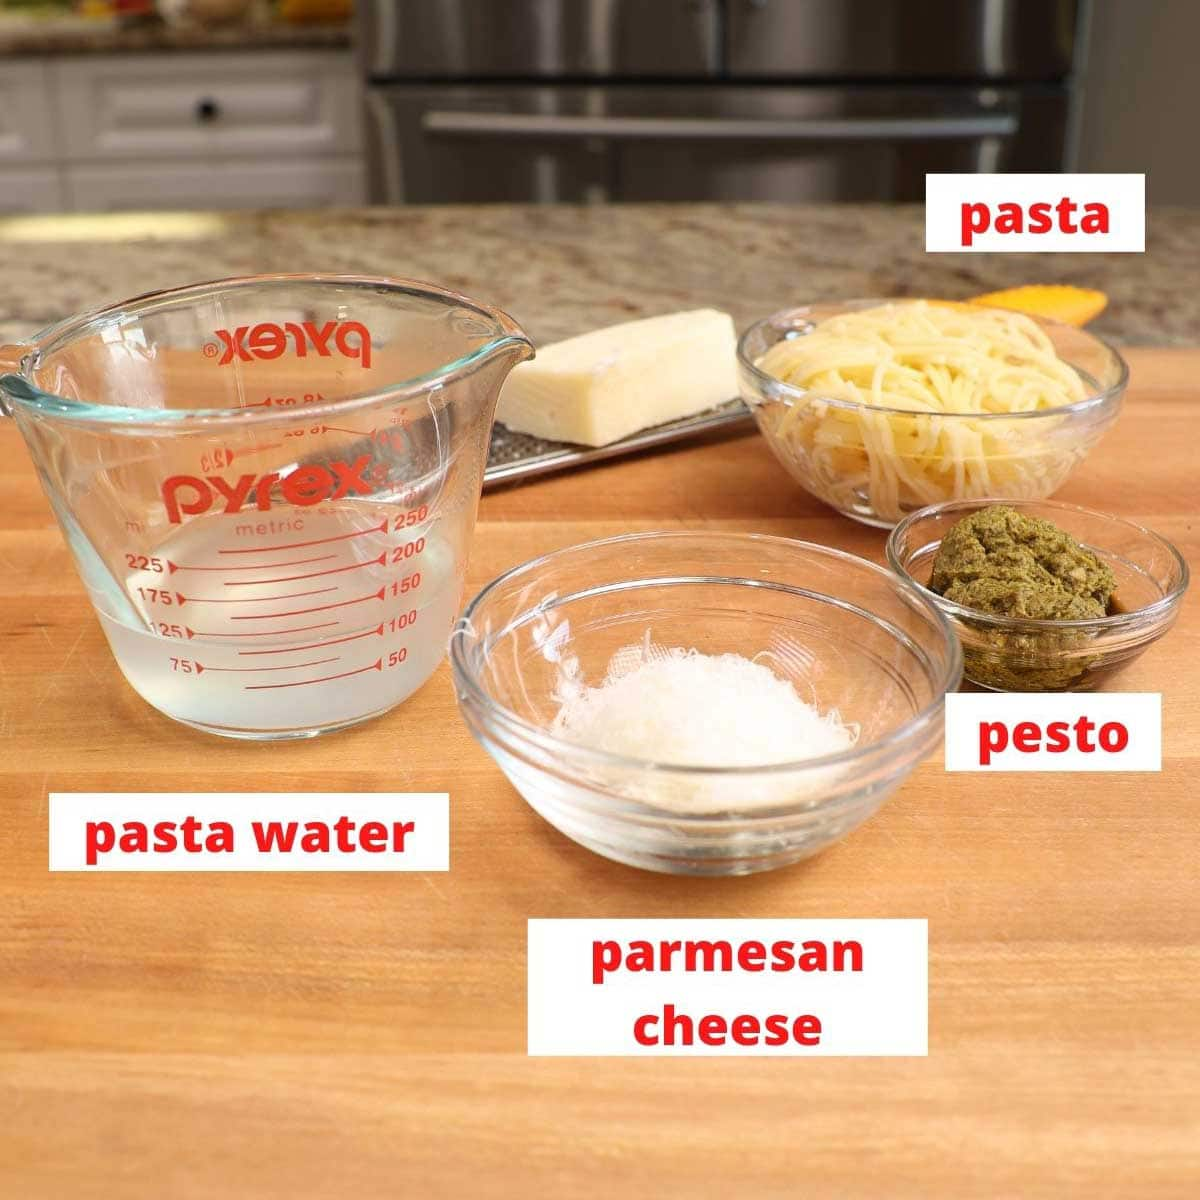 pasta, parmesan cheese,pesto and pasta water on a brown wooden cutting board